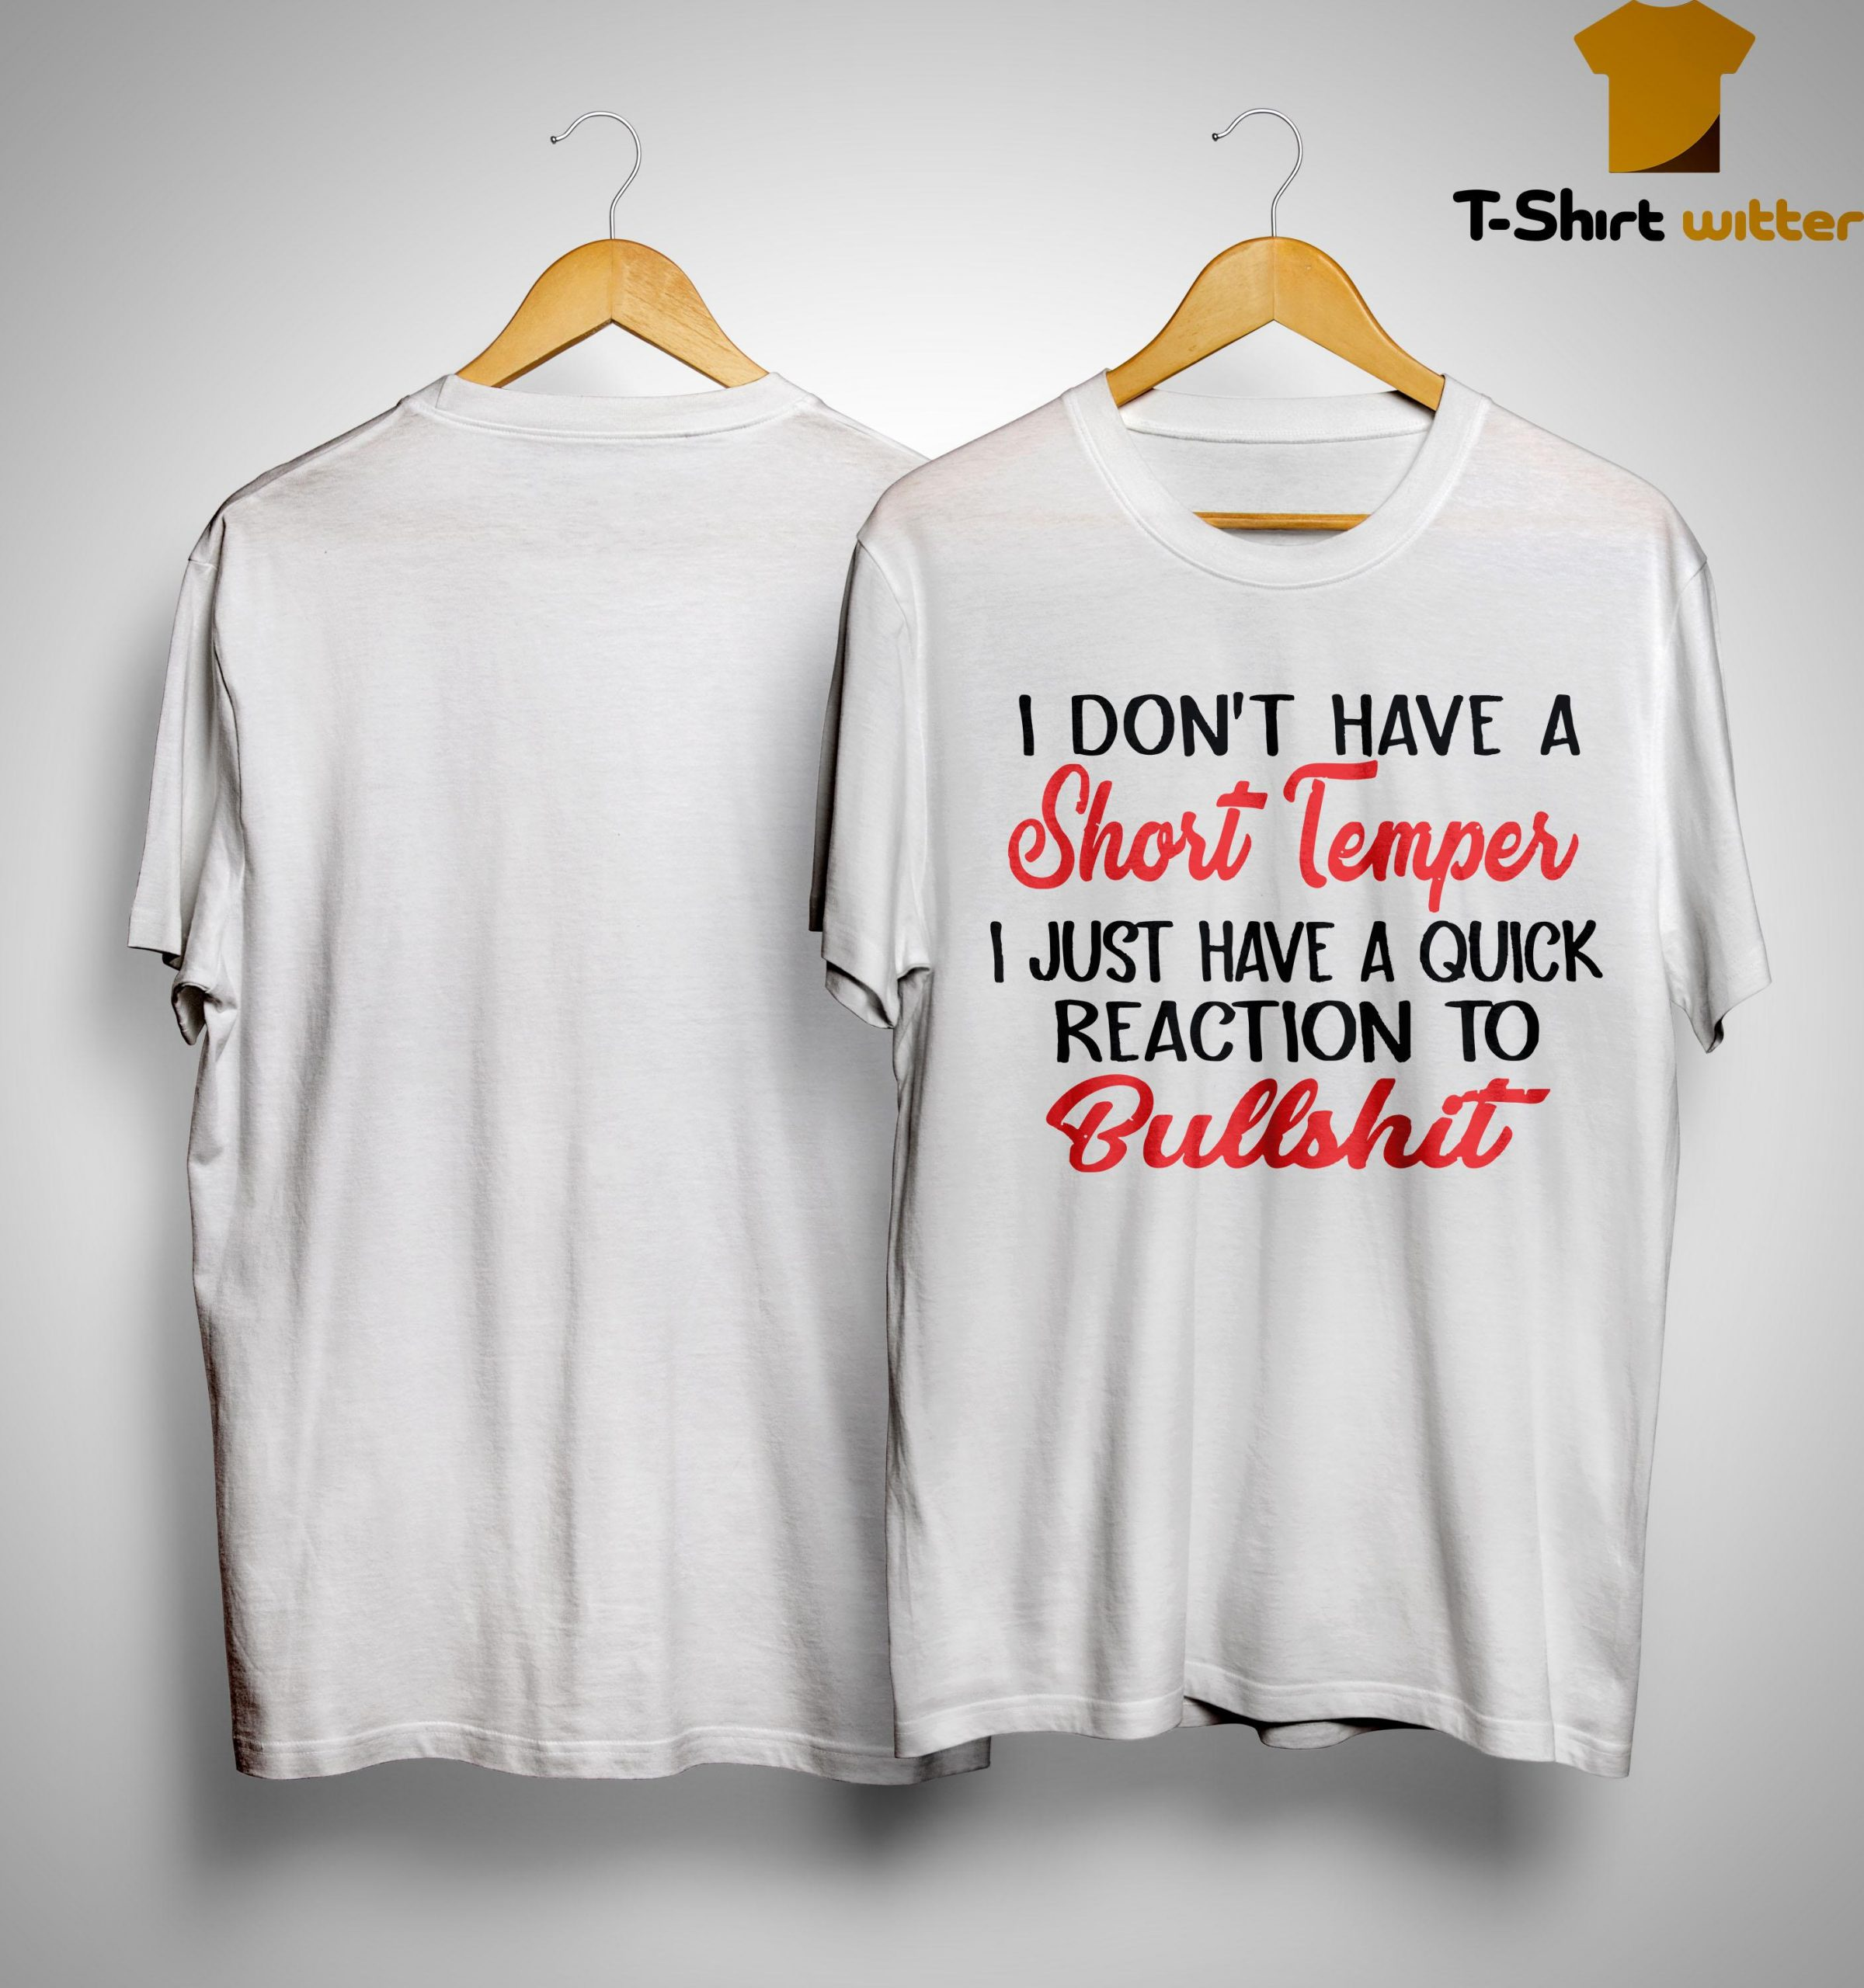 I Don't Have A Short Temper I Just Have A Quick Reaction To Bullshit Shirt